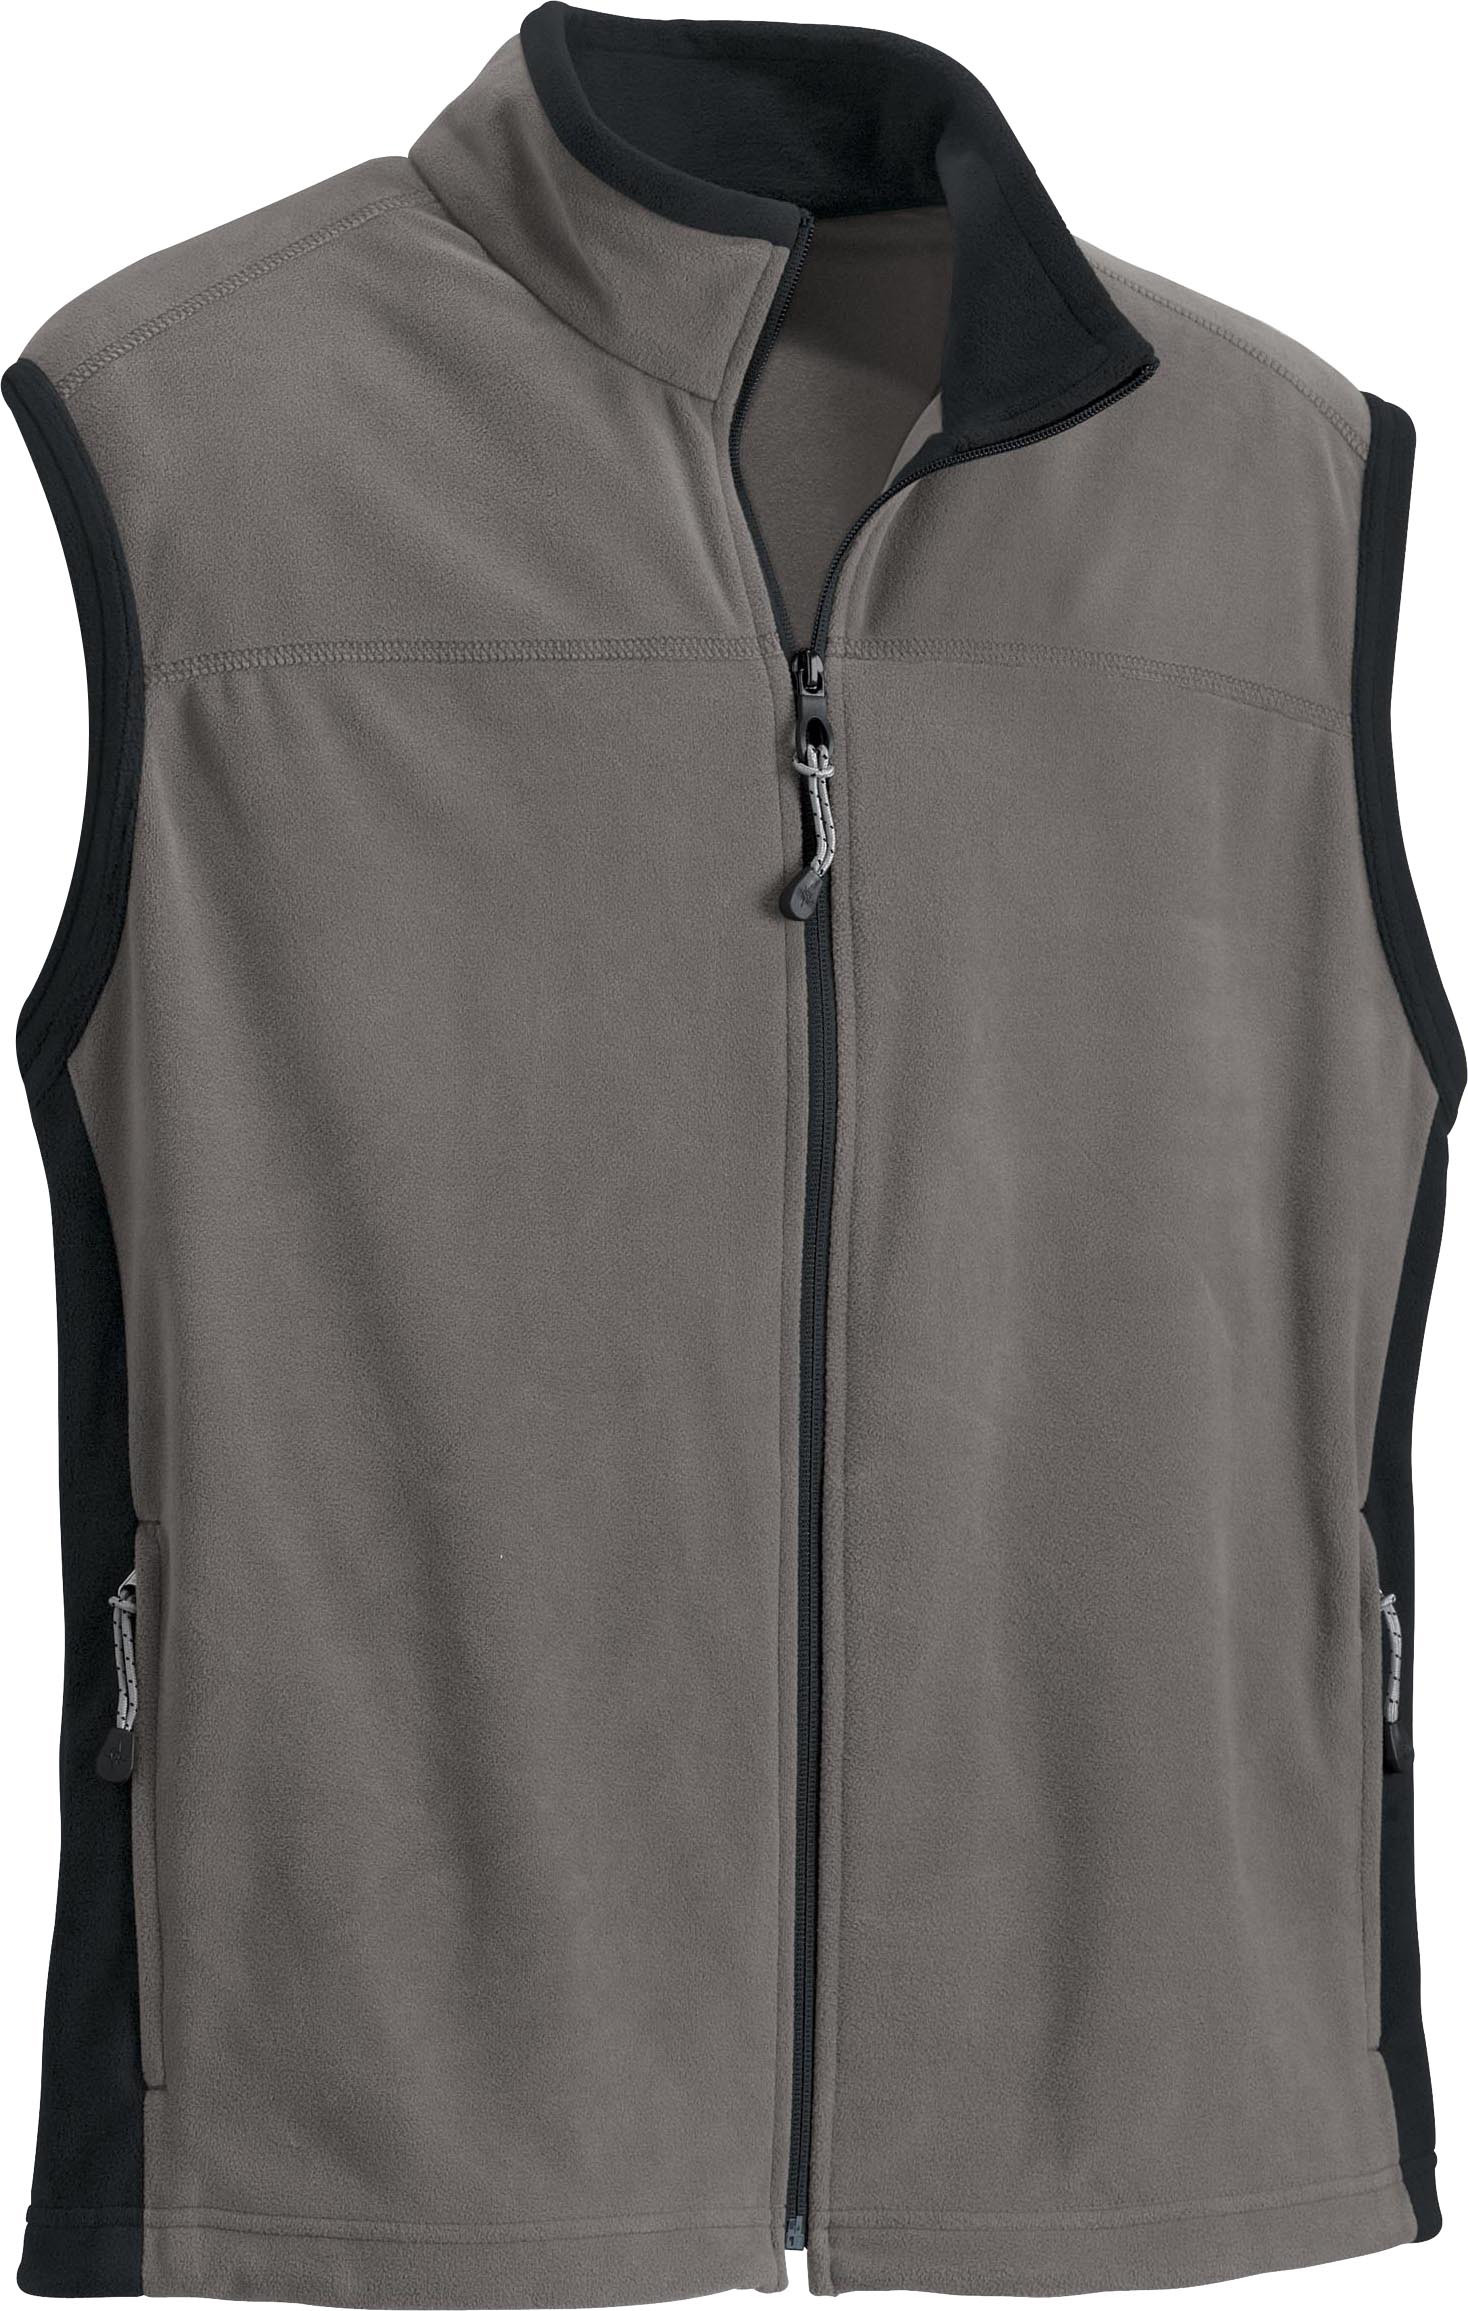 Ash City Vests 88114 - Men's Microfleece Vest